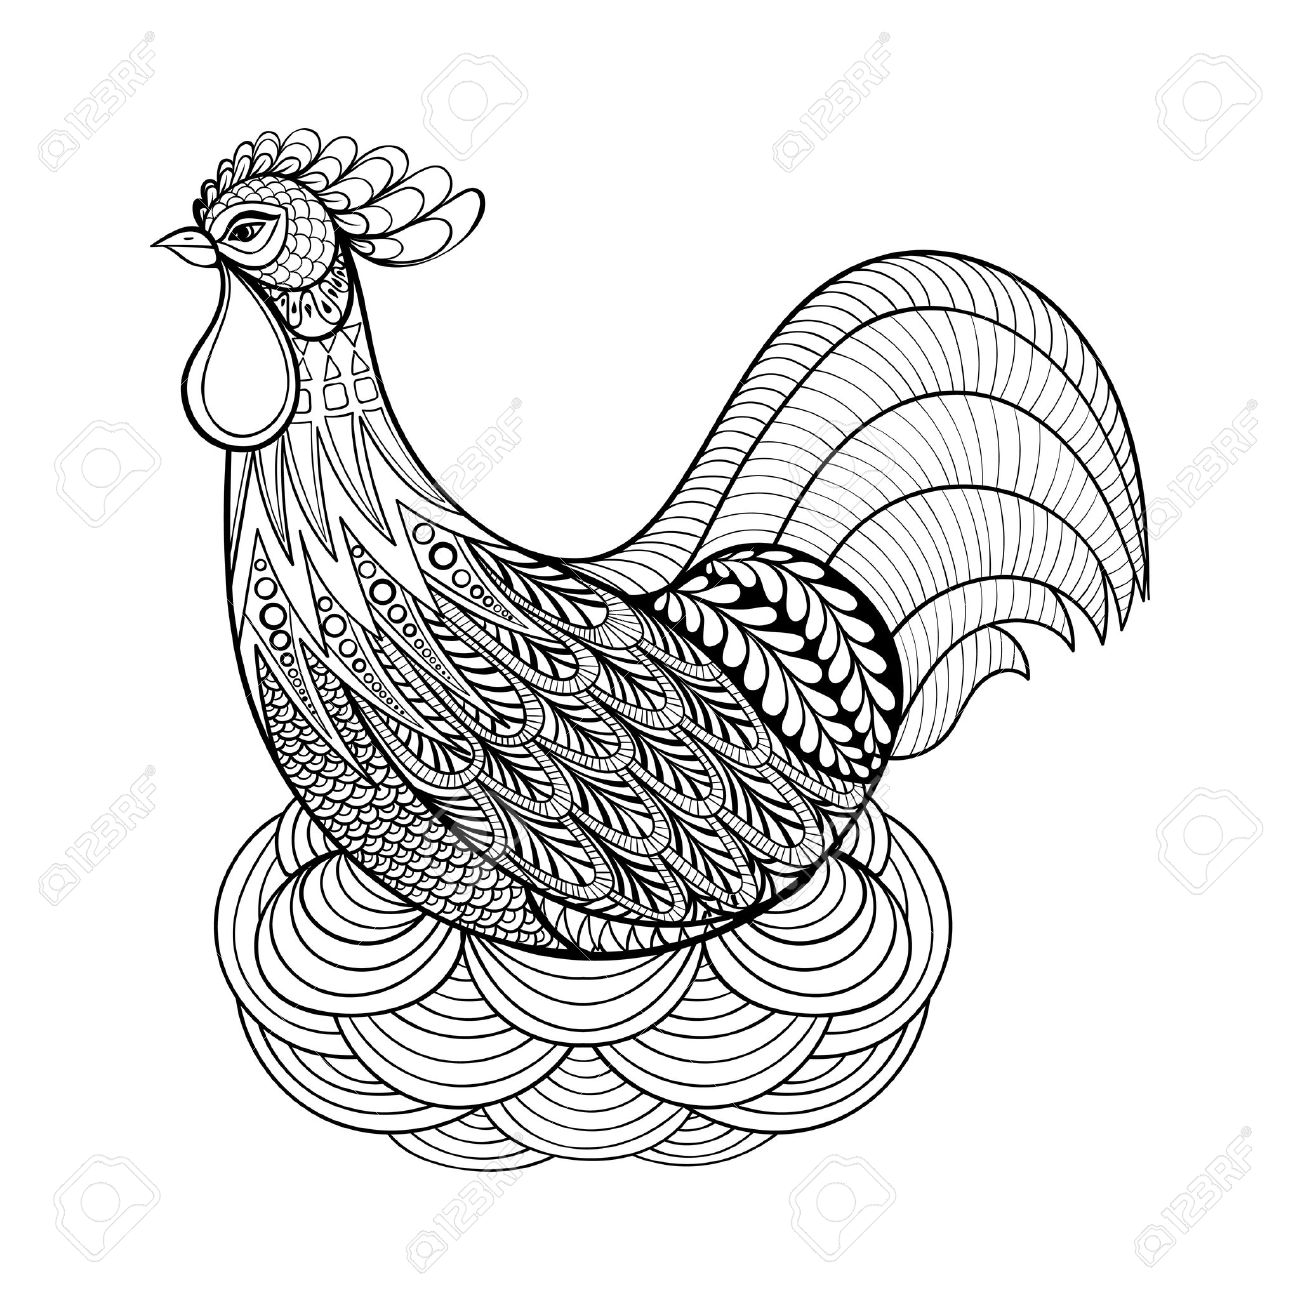 hand drawing chicken in nest for adult anti stress coloring pages artistic domestic farmer bird